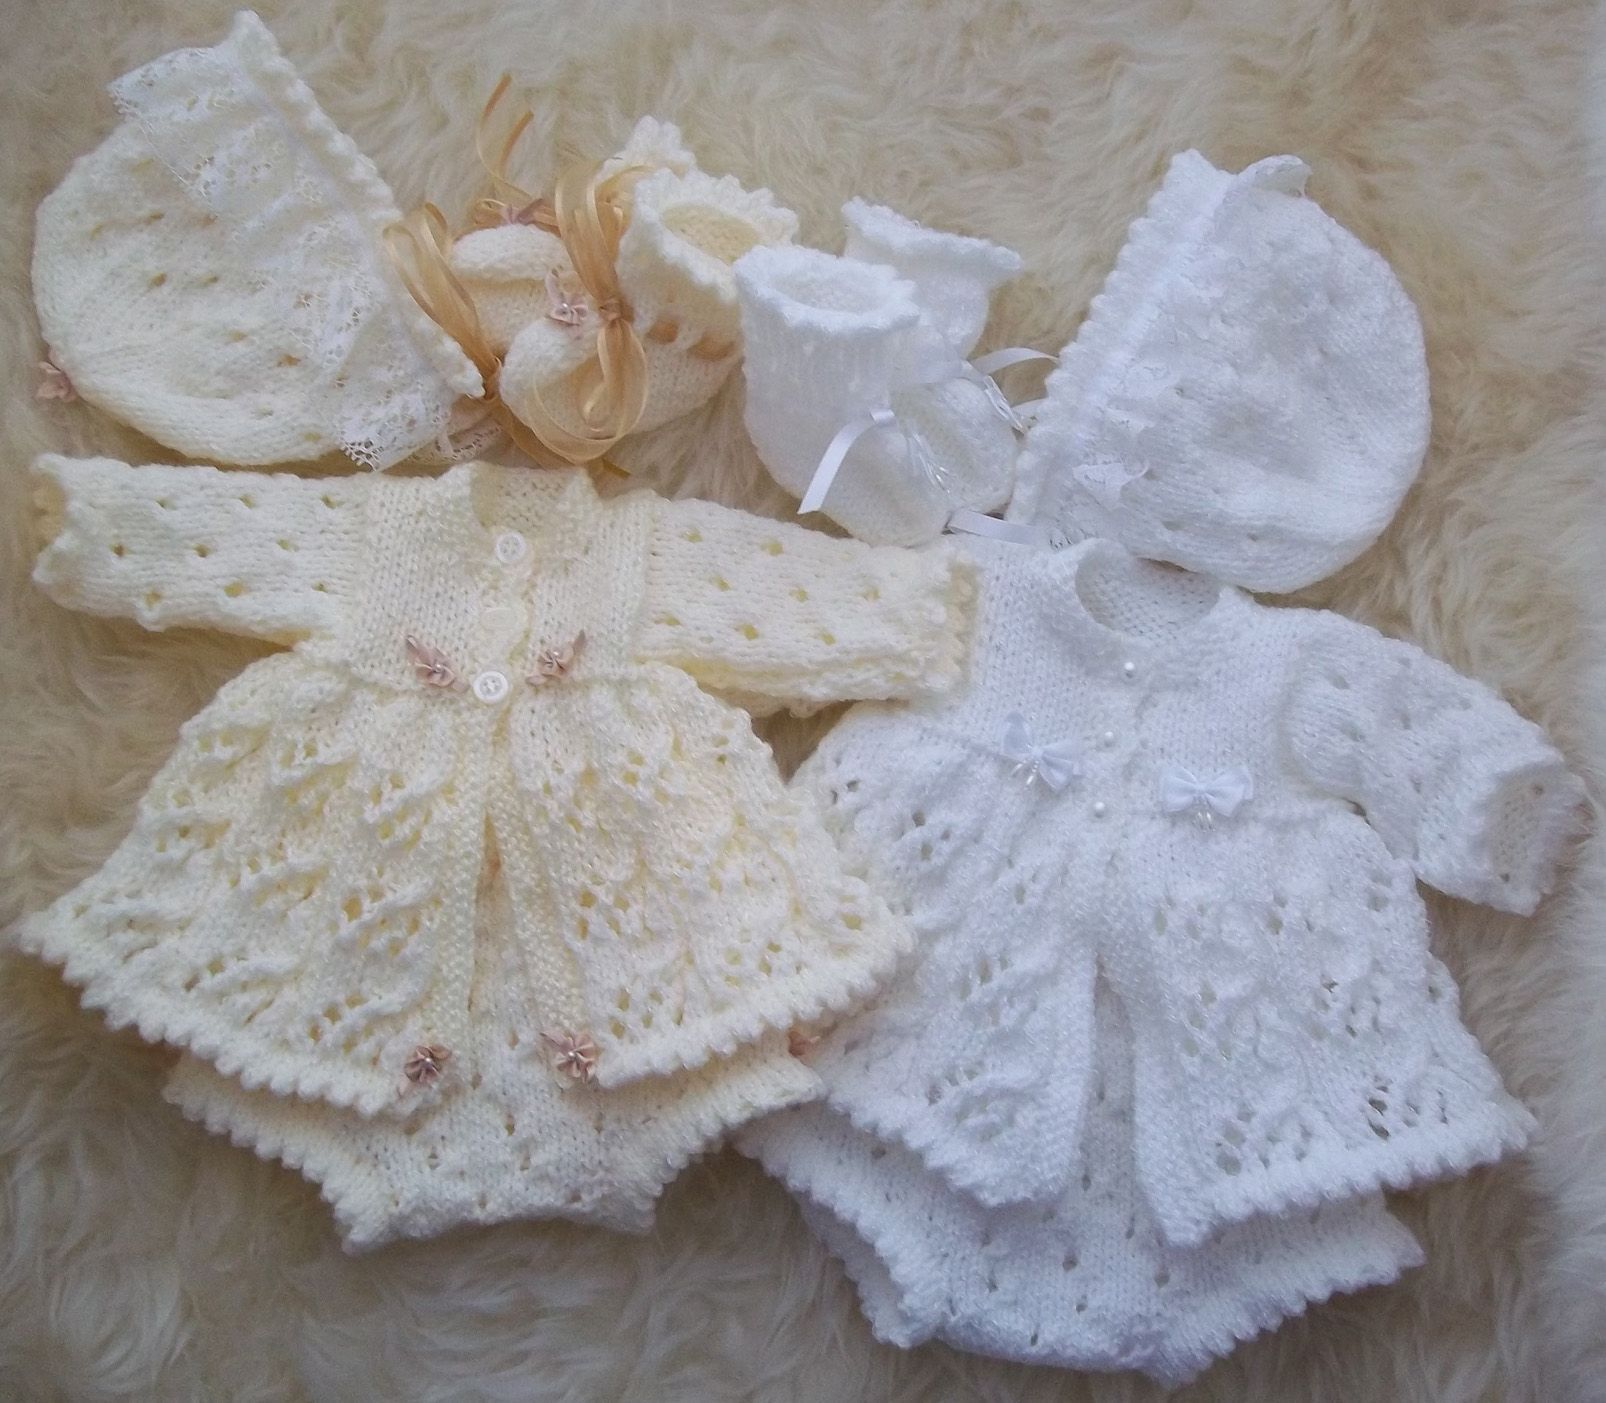 56b8742f3 Tipeetoes Designer Baby Outfits